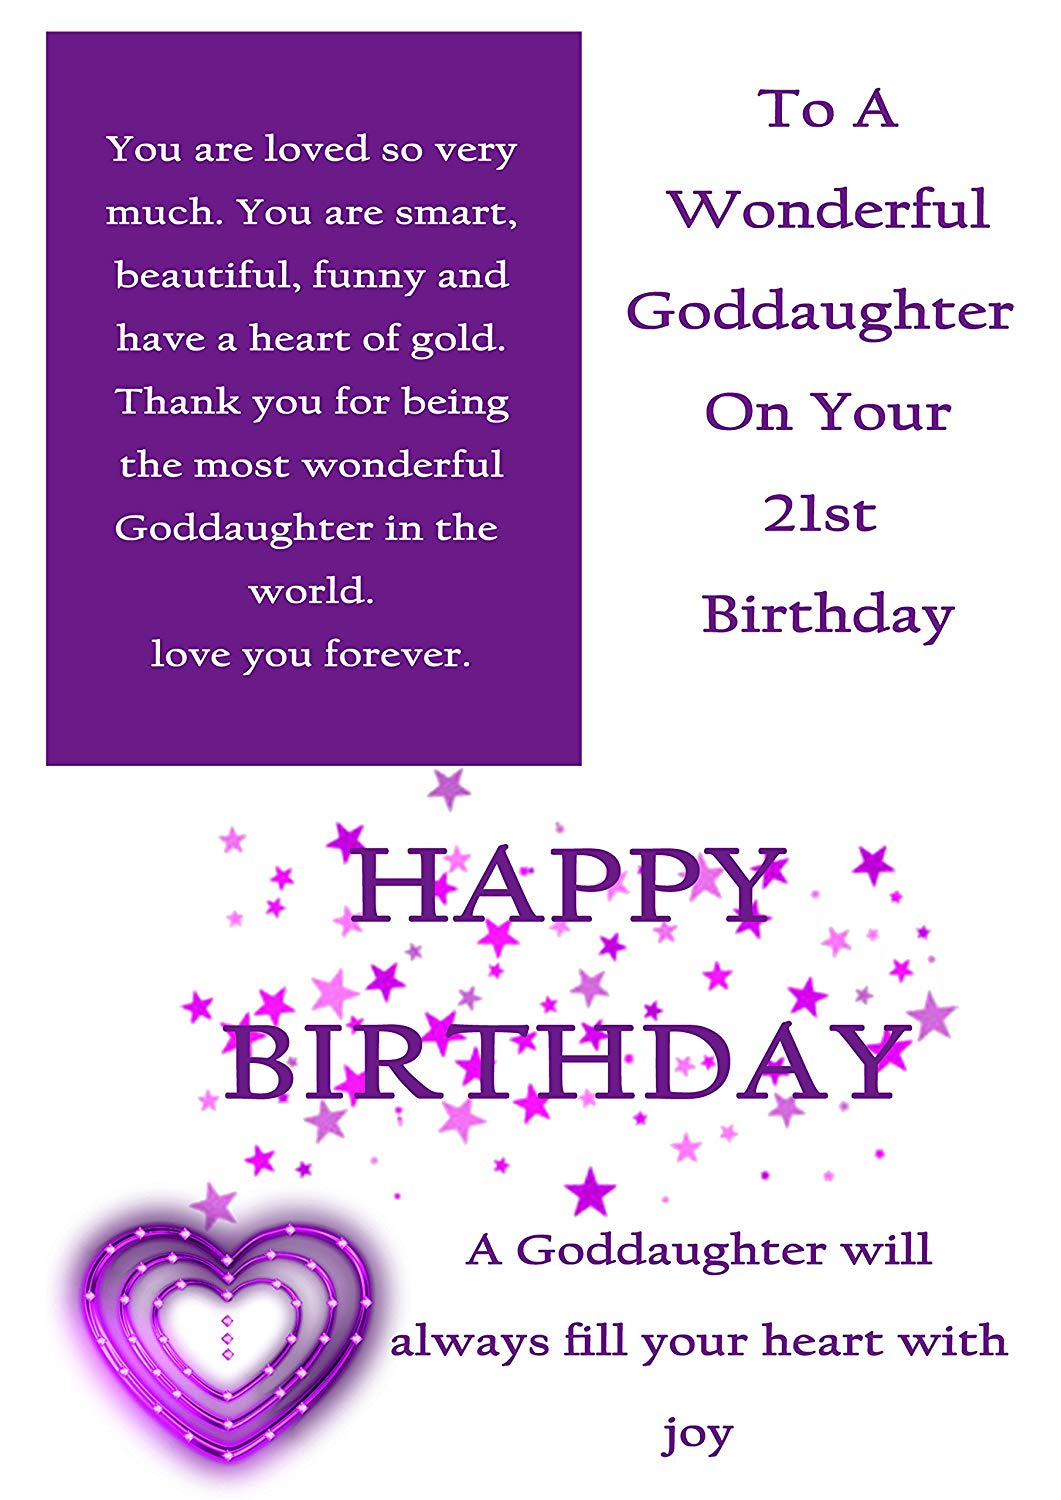 happy birthday goddaughter ; 81TLq4EHx8L